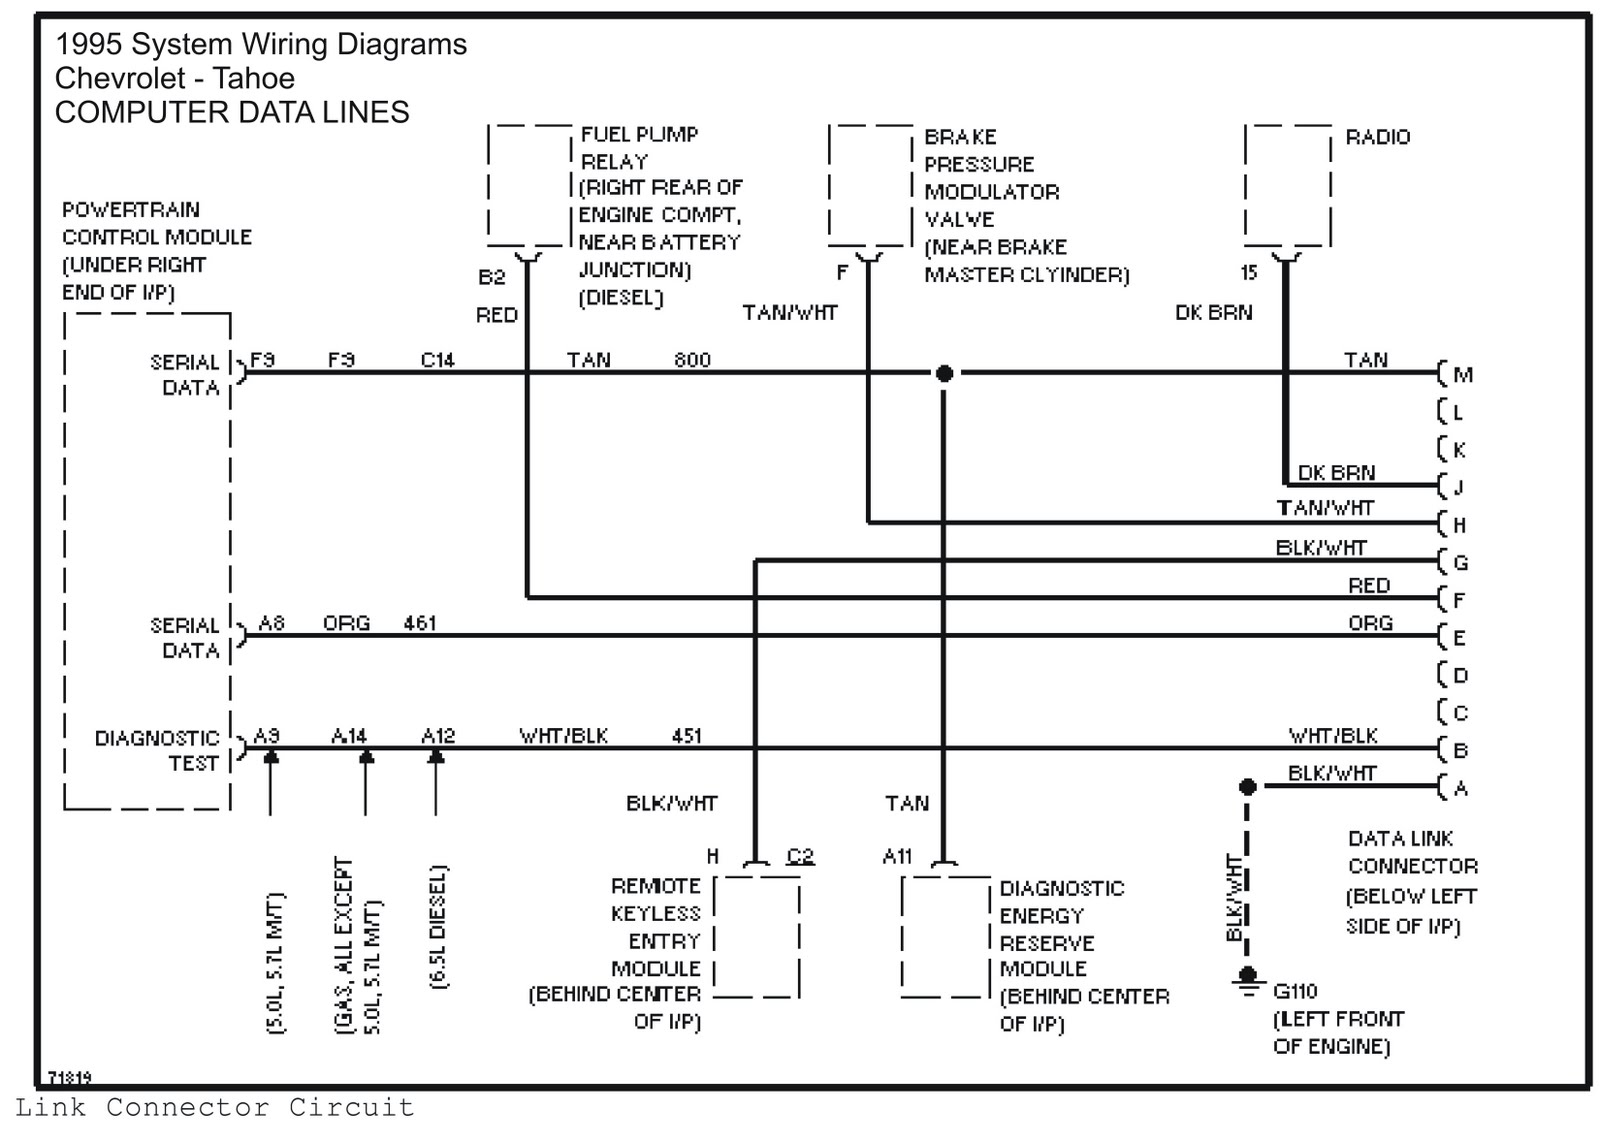 chevy express radio wiring diagram get free image about 1997 chevy tahoe wiring diagram 97 tahoe wiring diagram [ 1600 x 1141 Pixel ]